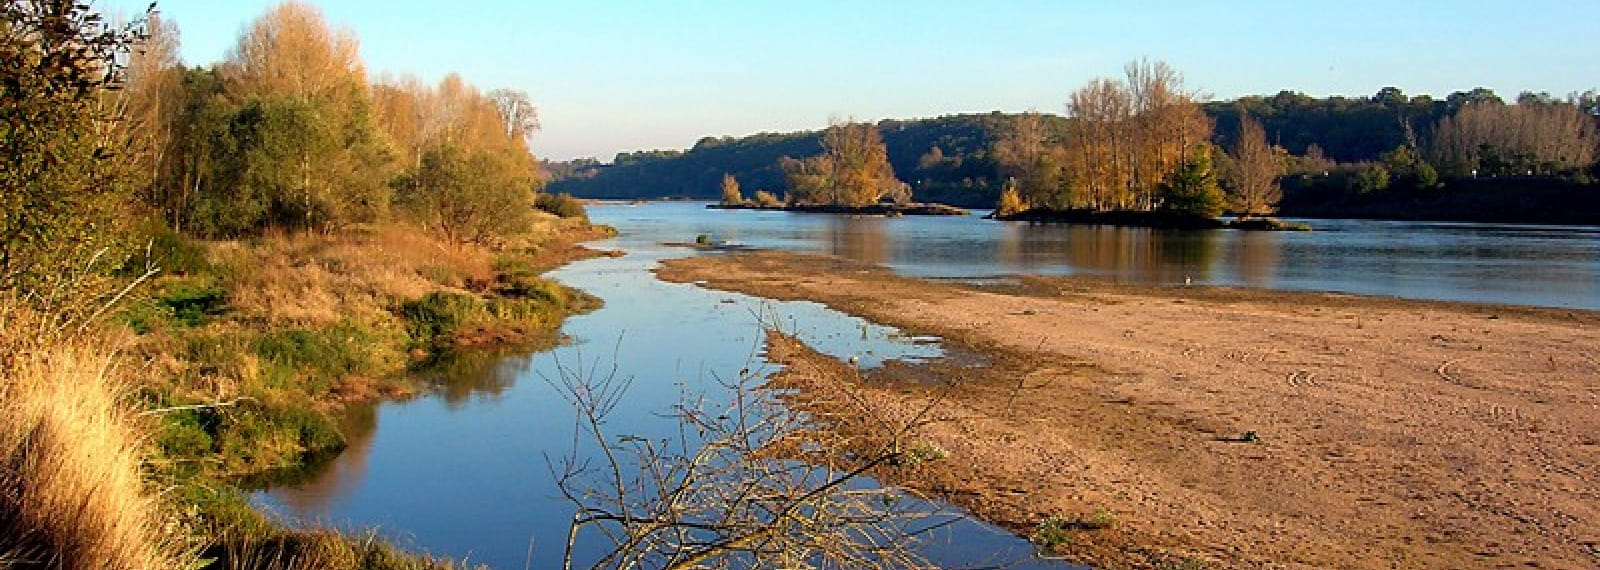 Loire automne_©mdl37